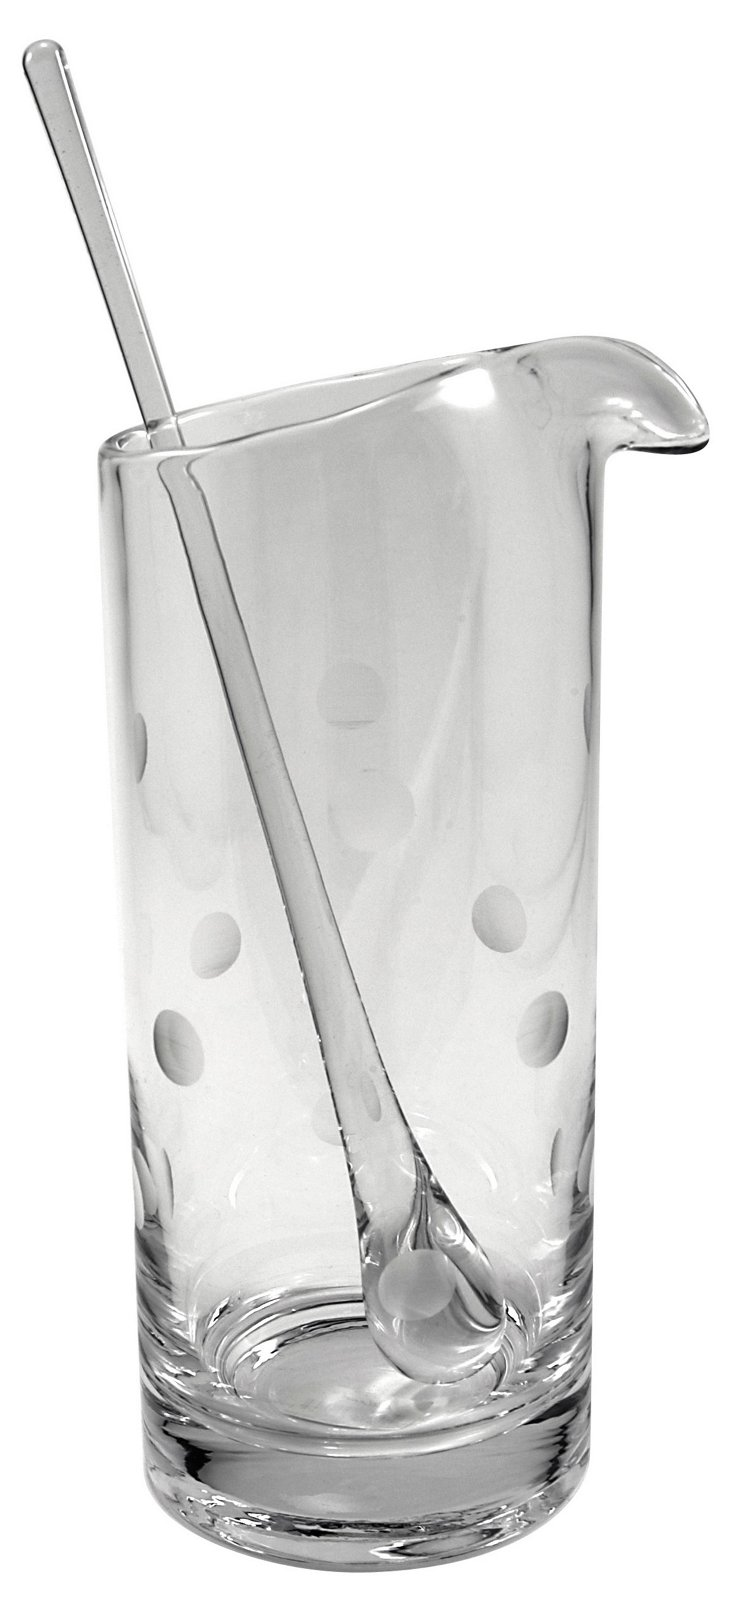 Polka Dot Pitcher w/ Stirrer